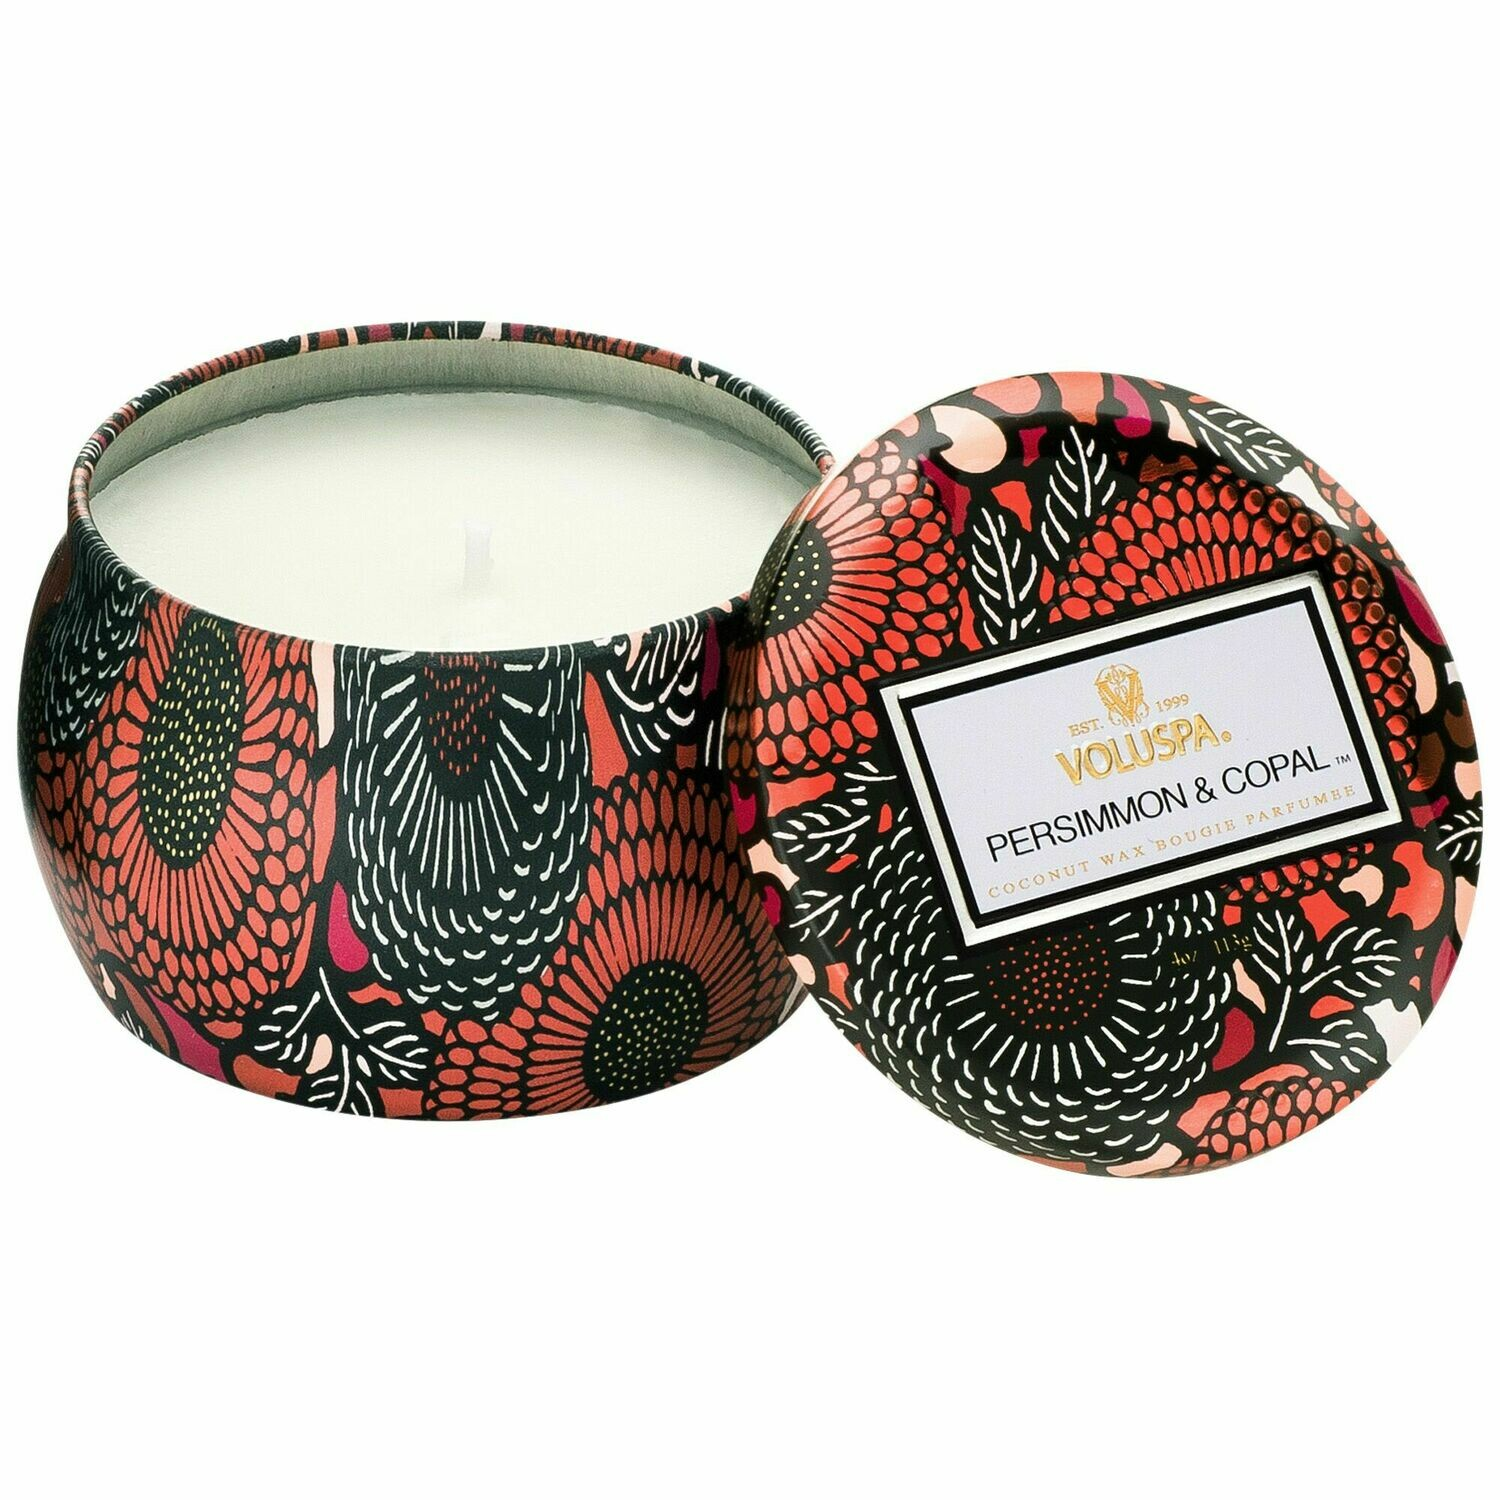 Persimmon + Copal Candle - Voluspa Petite Tin Candle